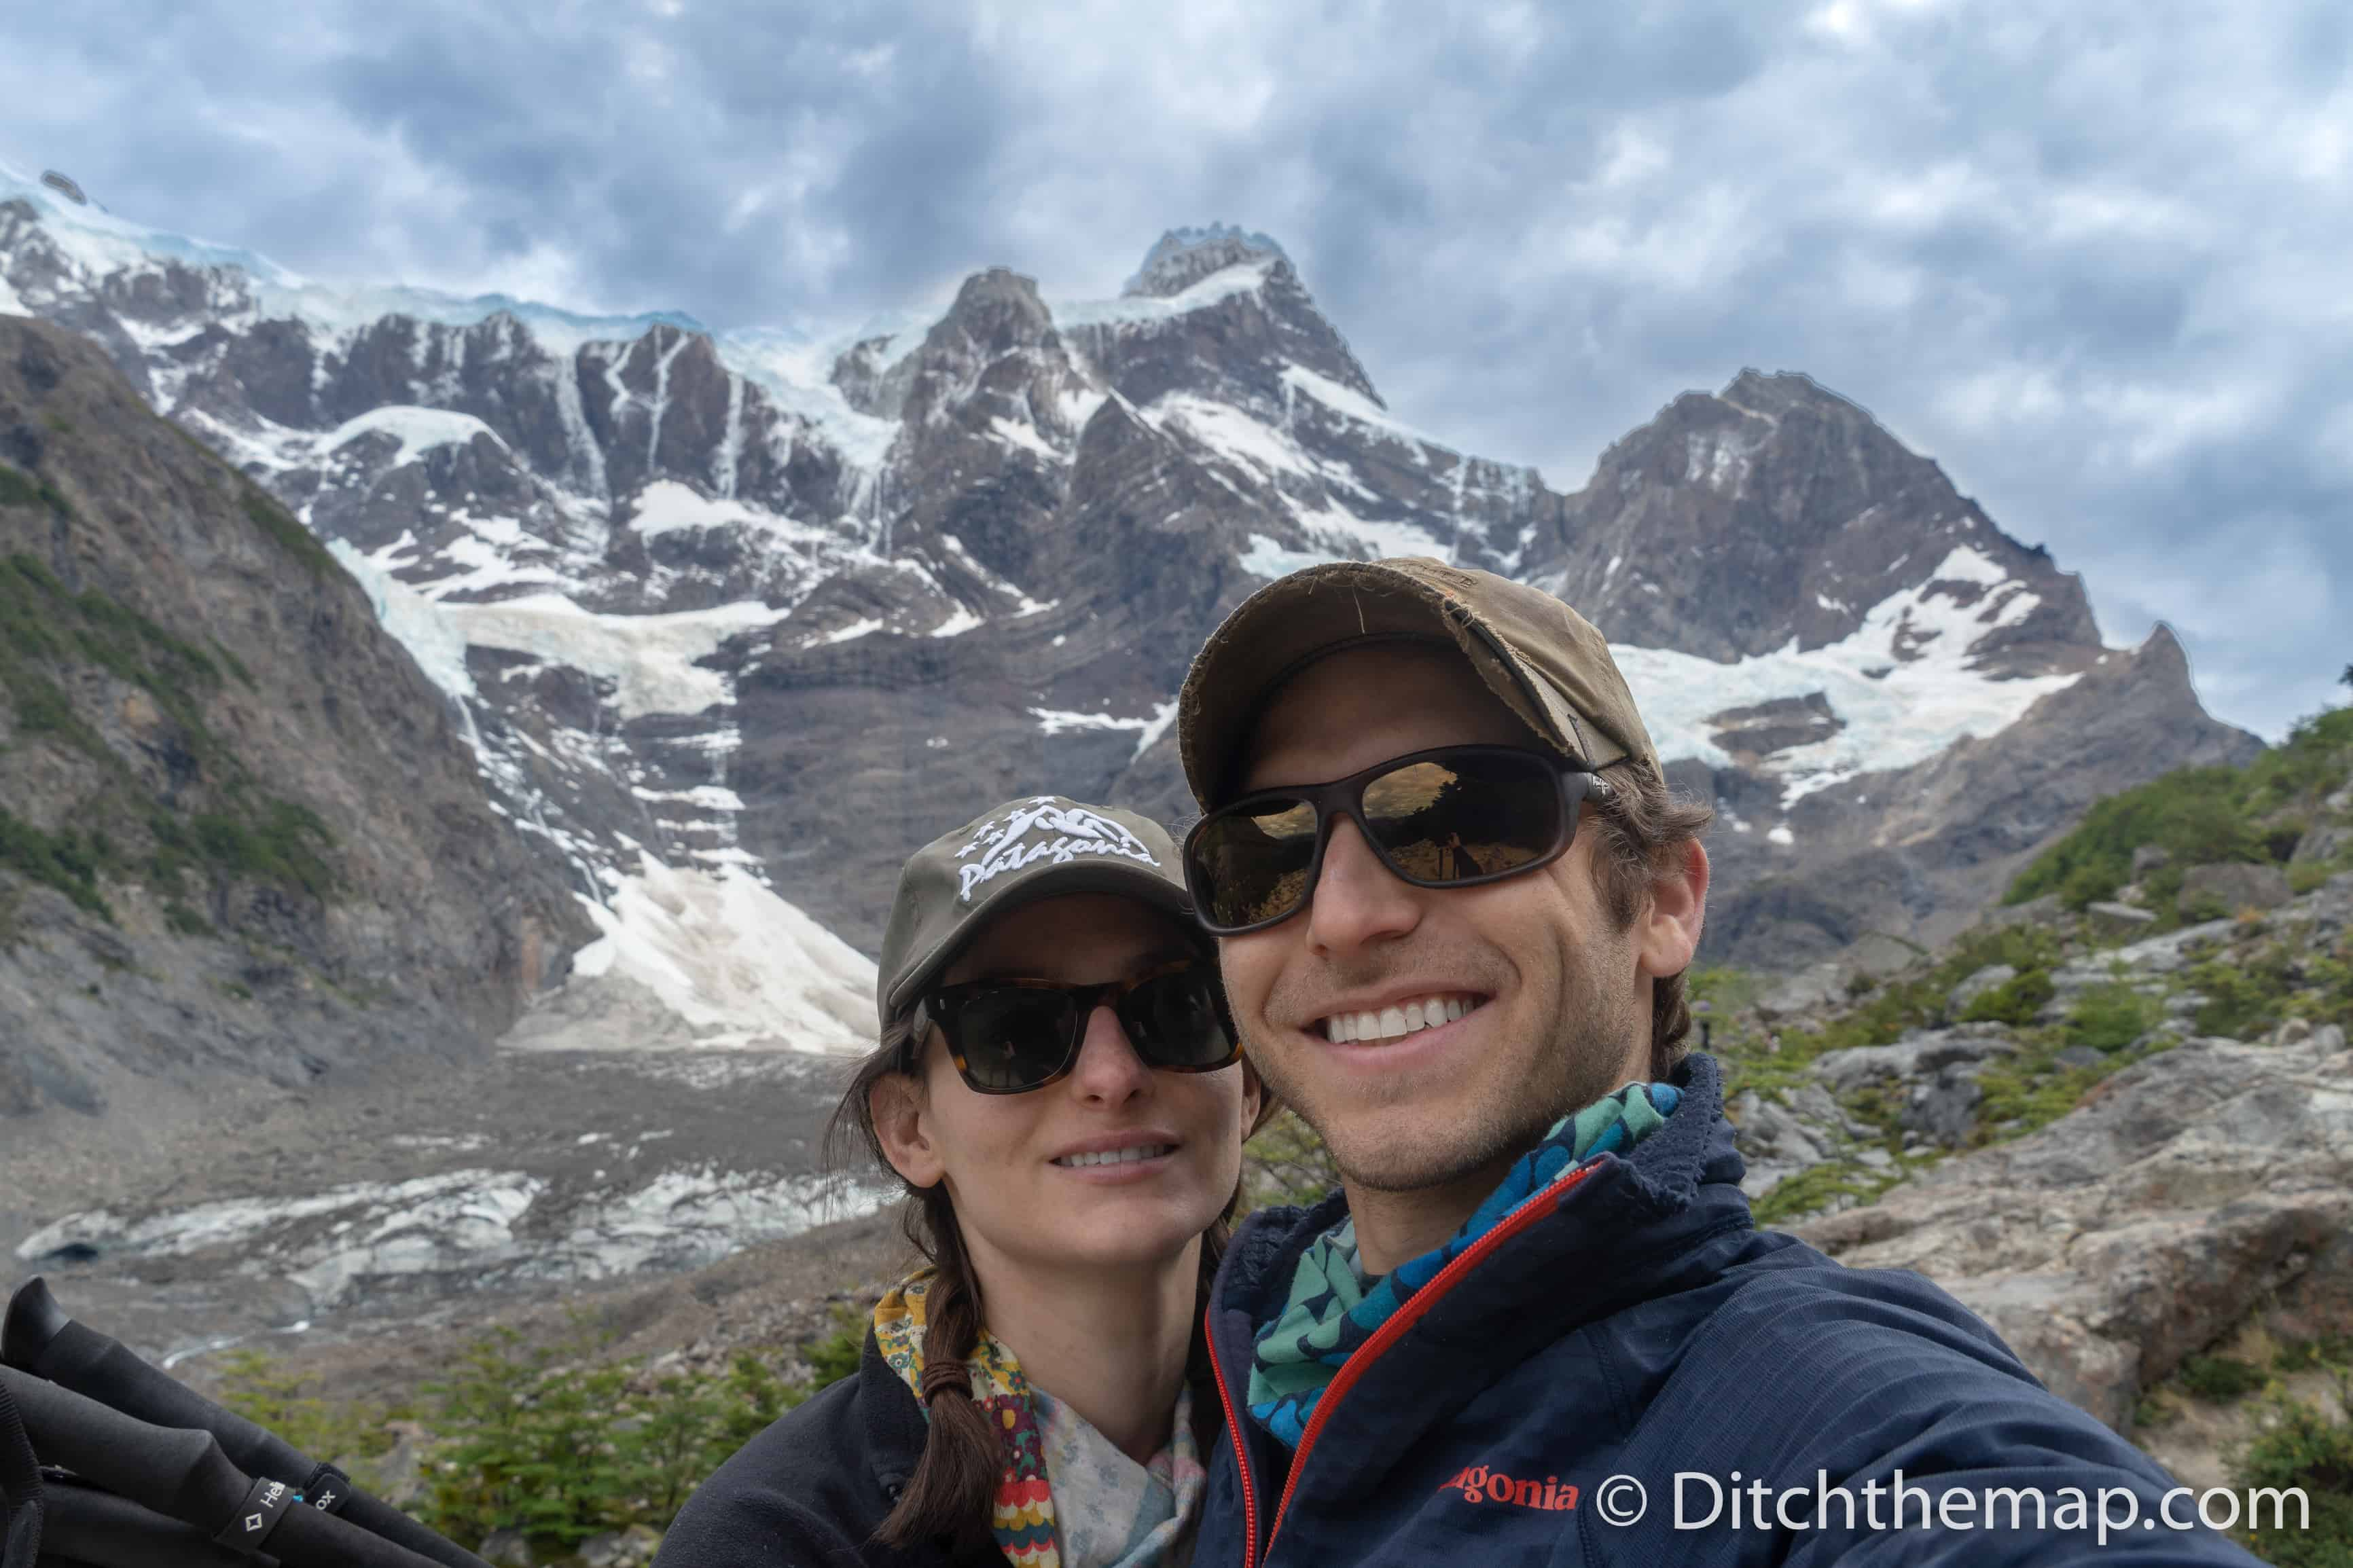 A couple's selfie in front of Torres del Paine Trek snowy mountains